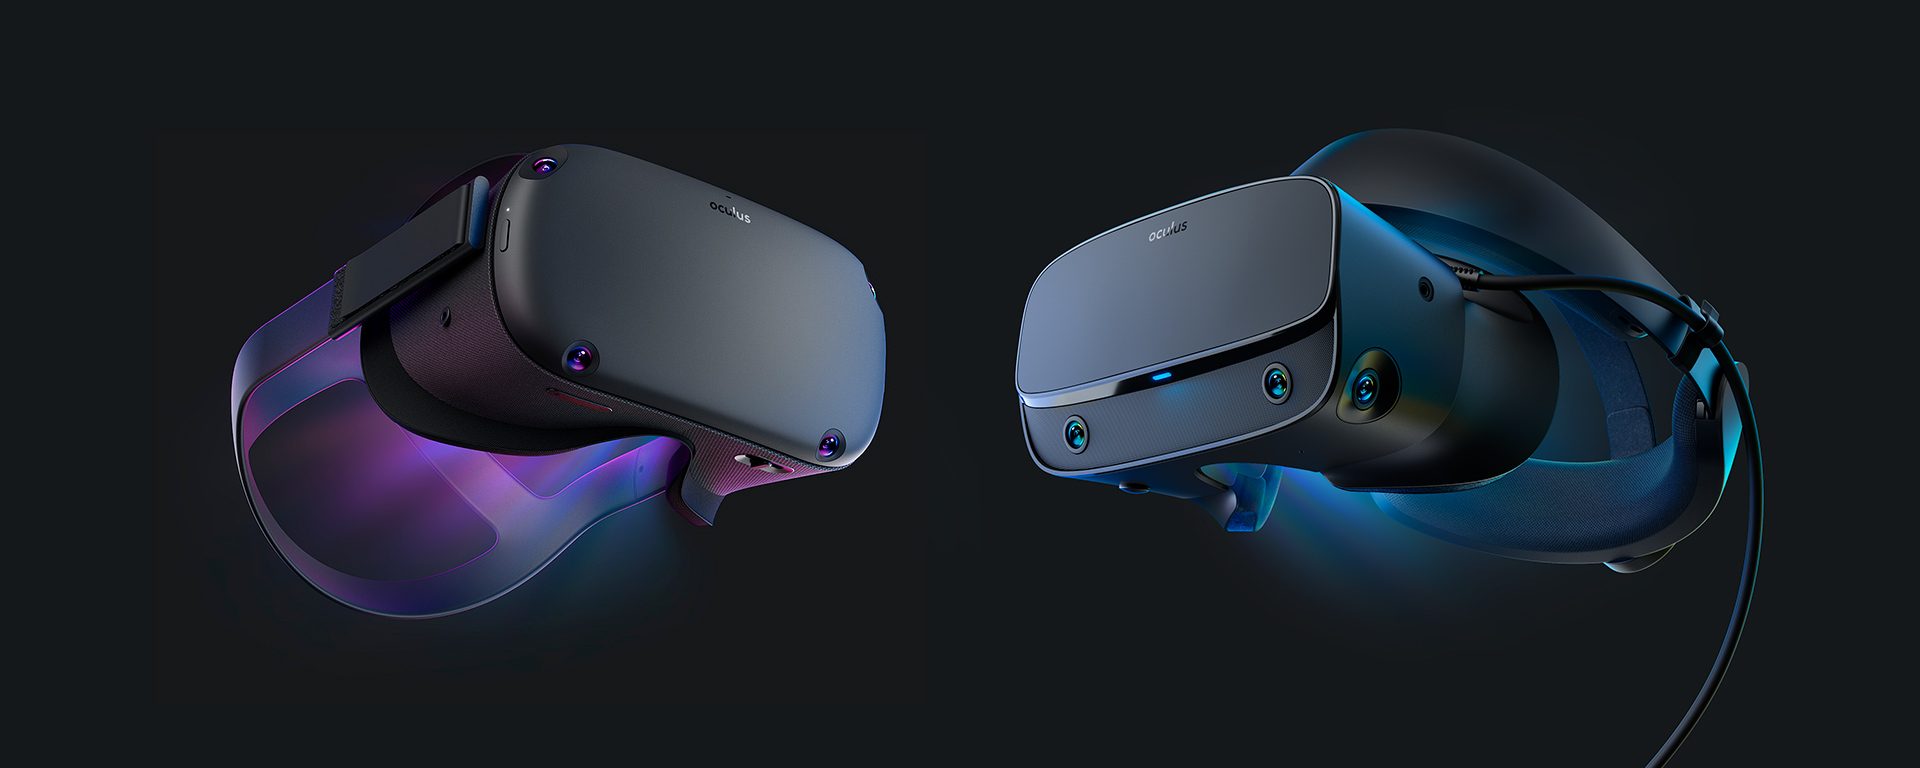 Oculus Quest and Rift S preorders now available - Many Worlds